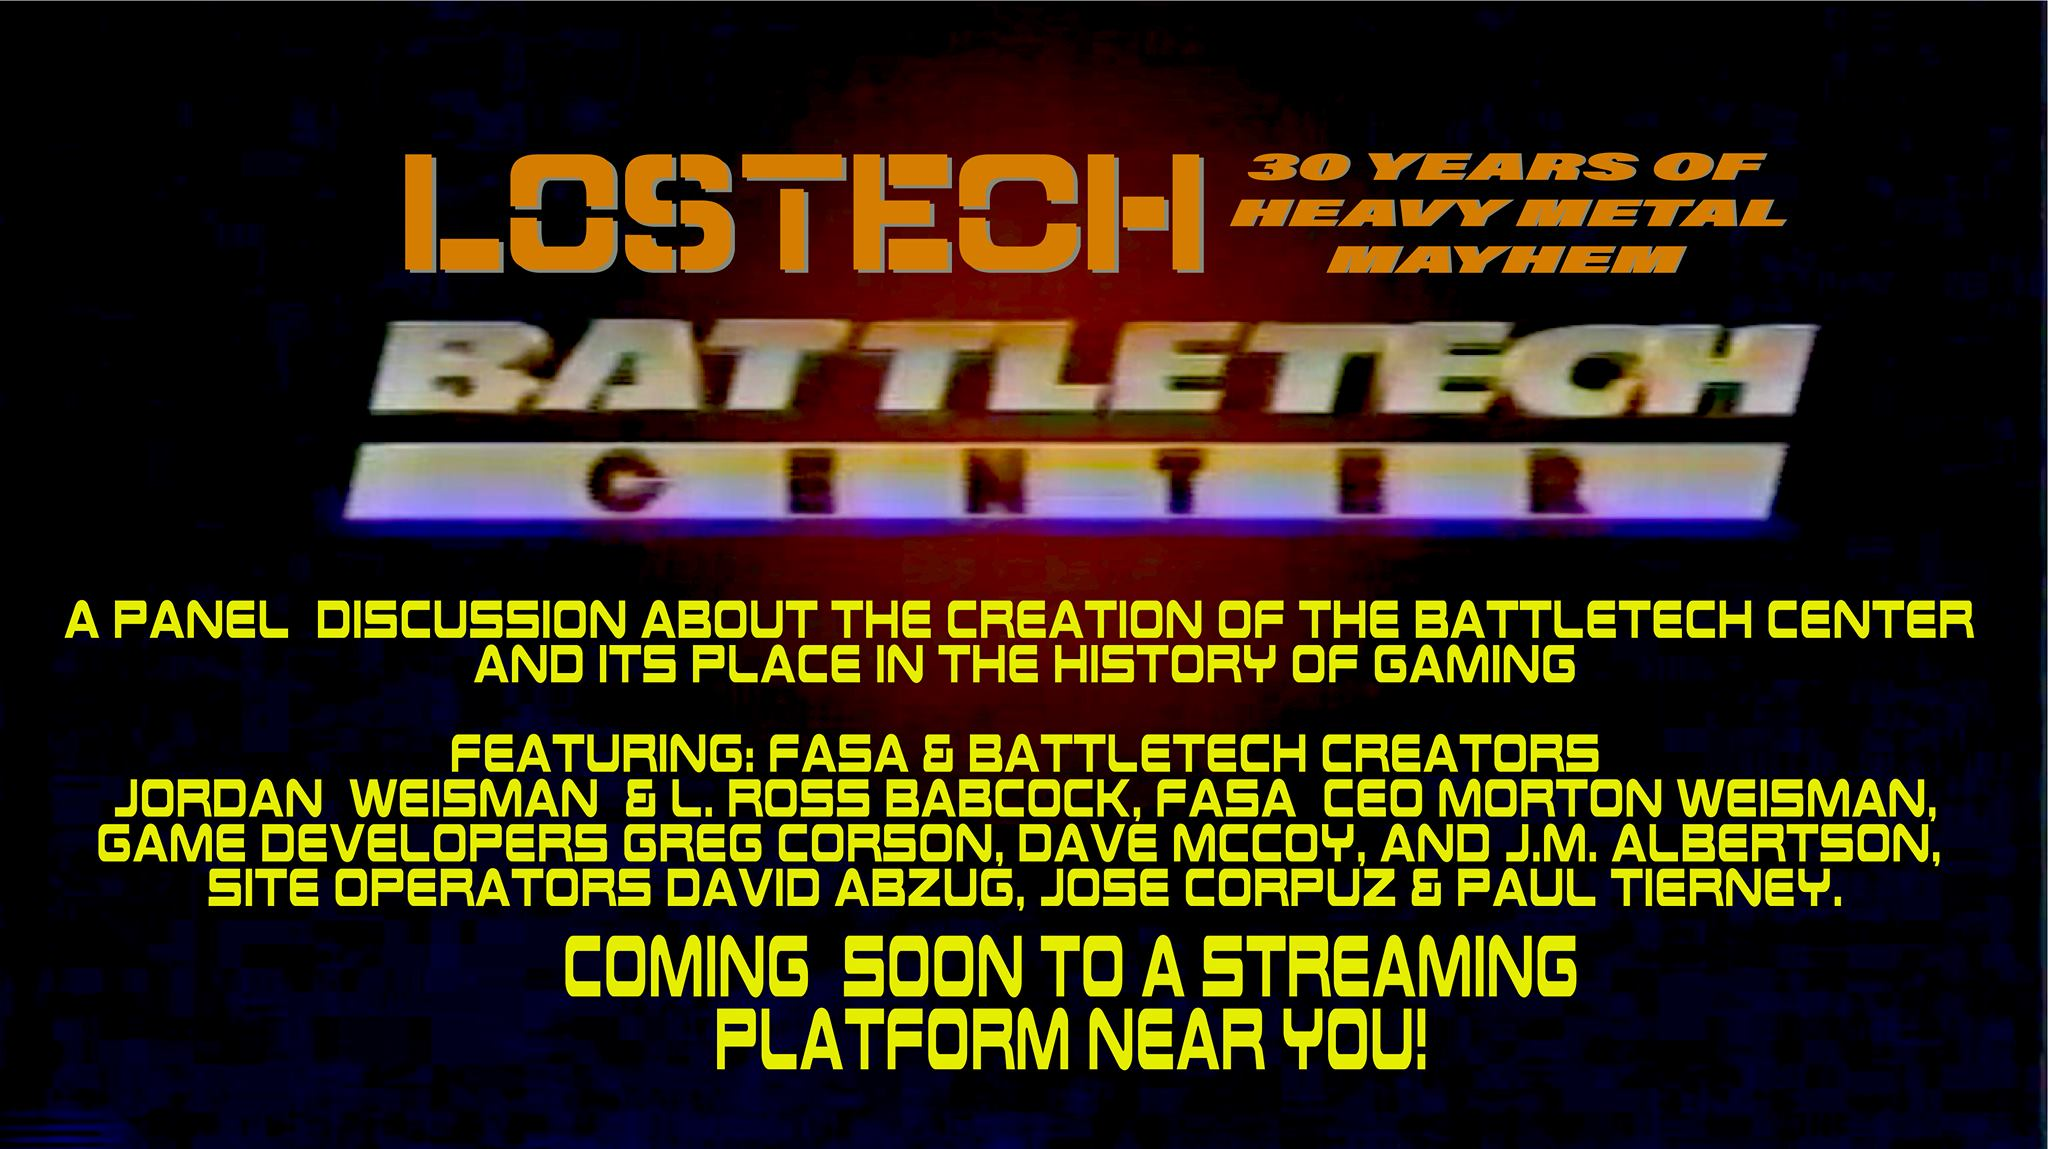 Lostech: The History of The BattleTech Center and Virtual World. Coming Soon!